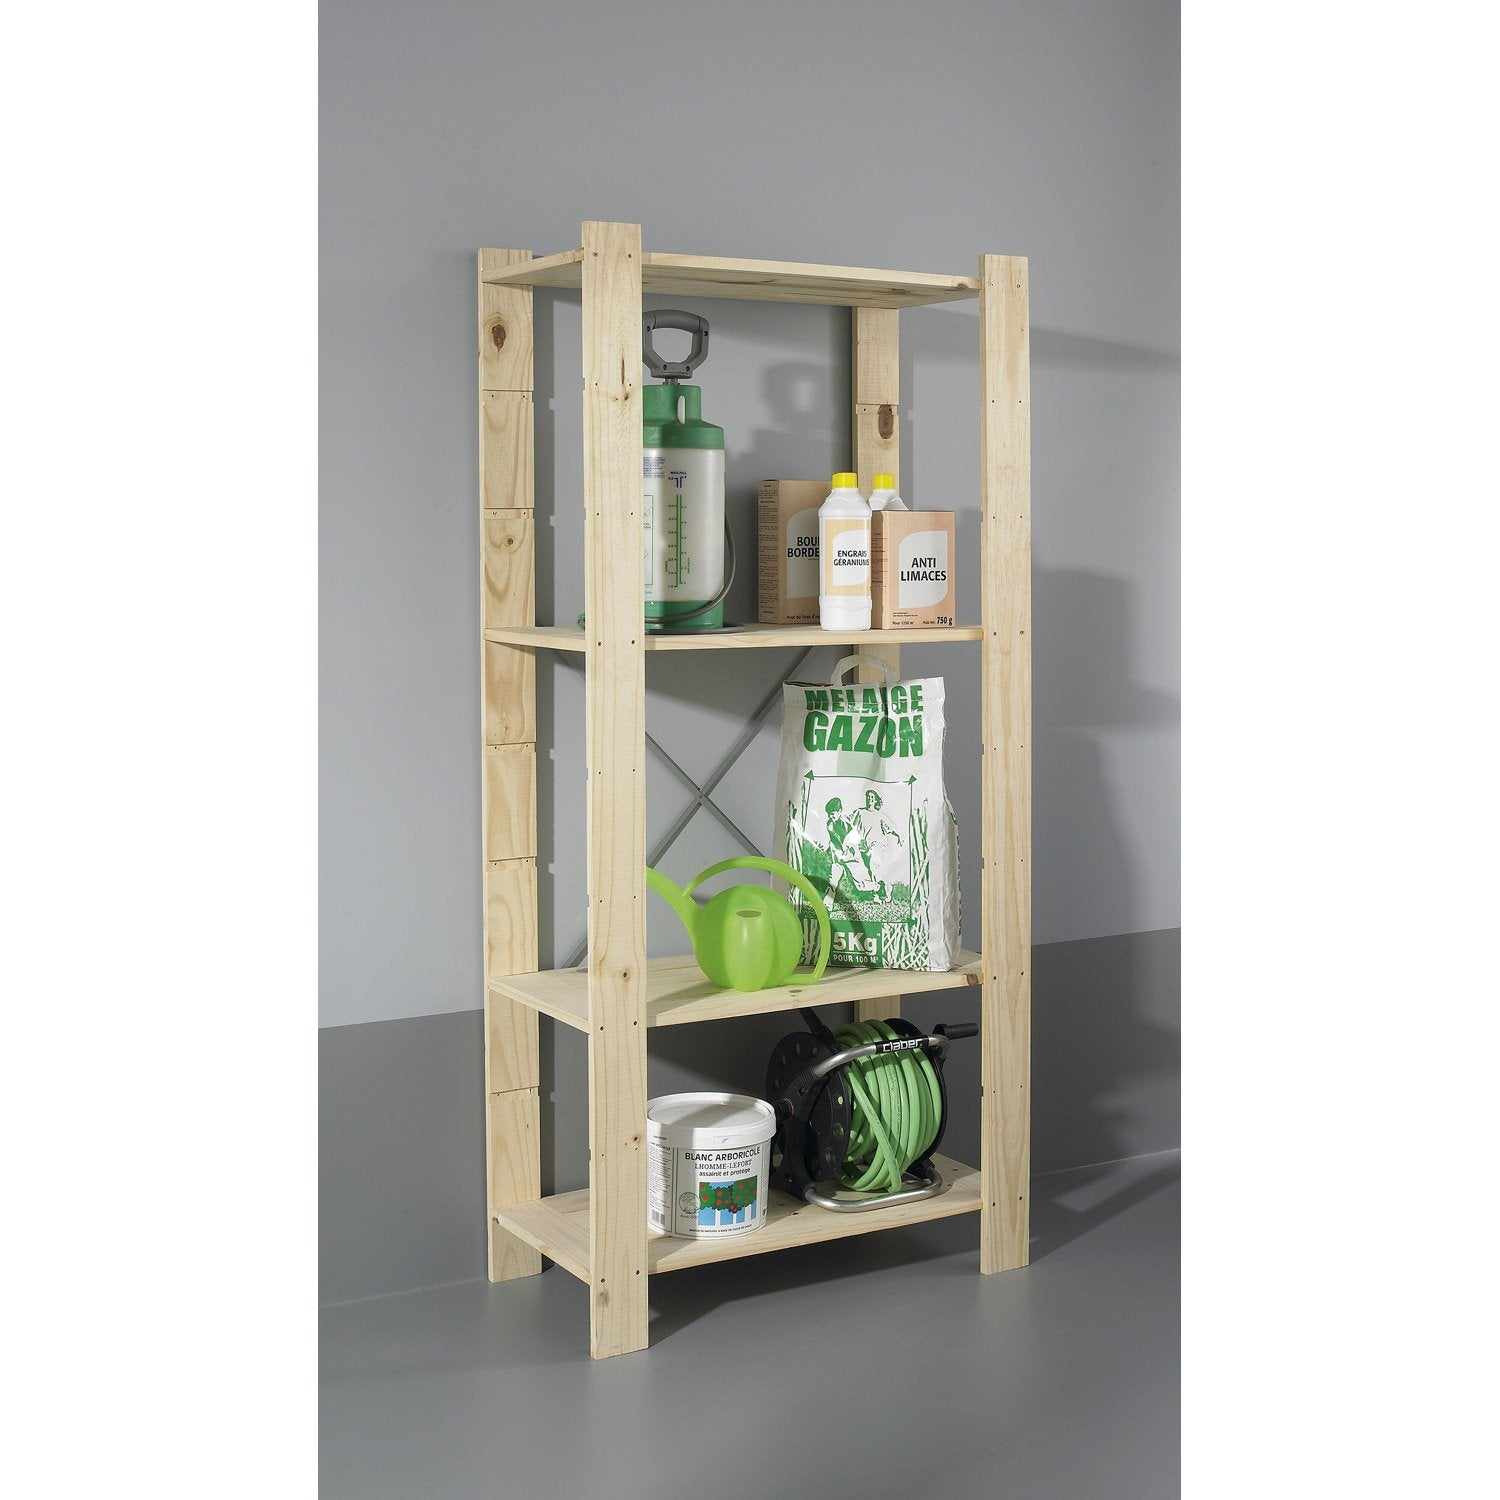 Etag re en pin 4 tablettes mod le spacea l82xh170xp40cm leroy merlin - Etagere bois leroy merlin ...